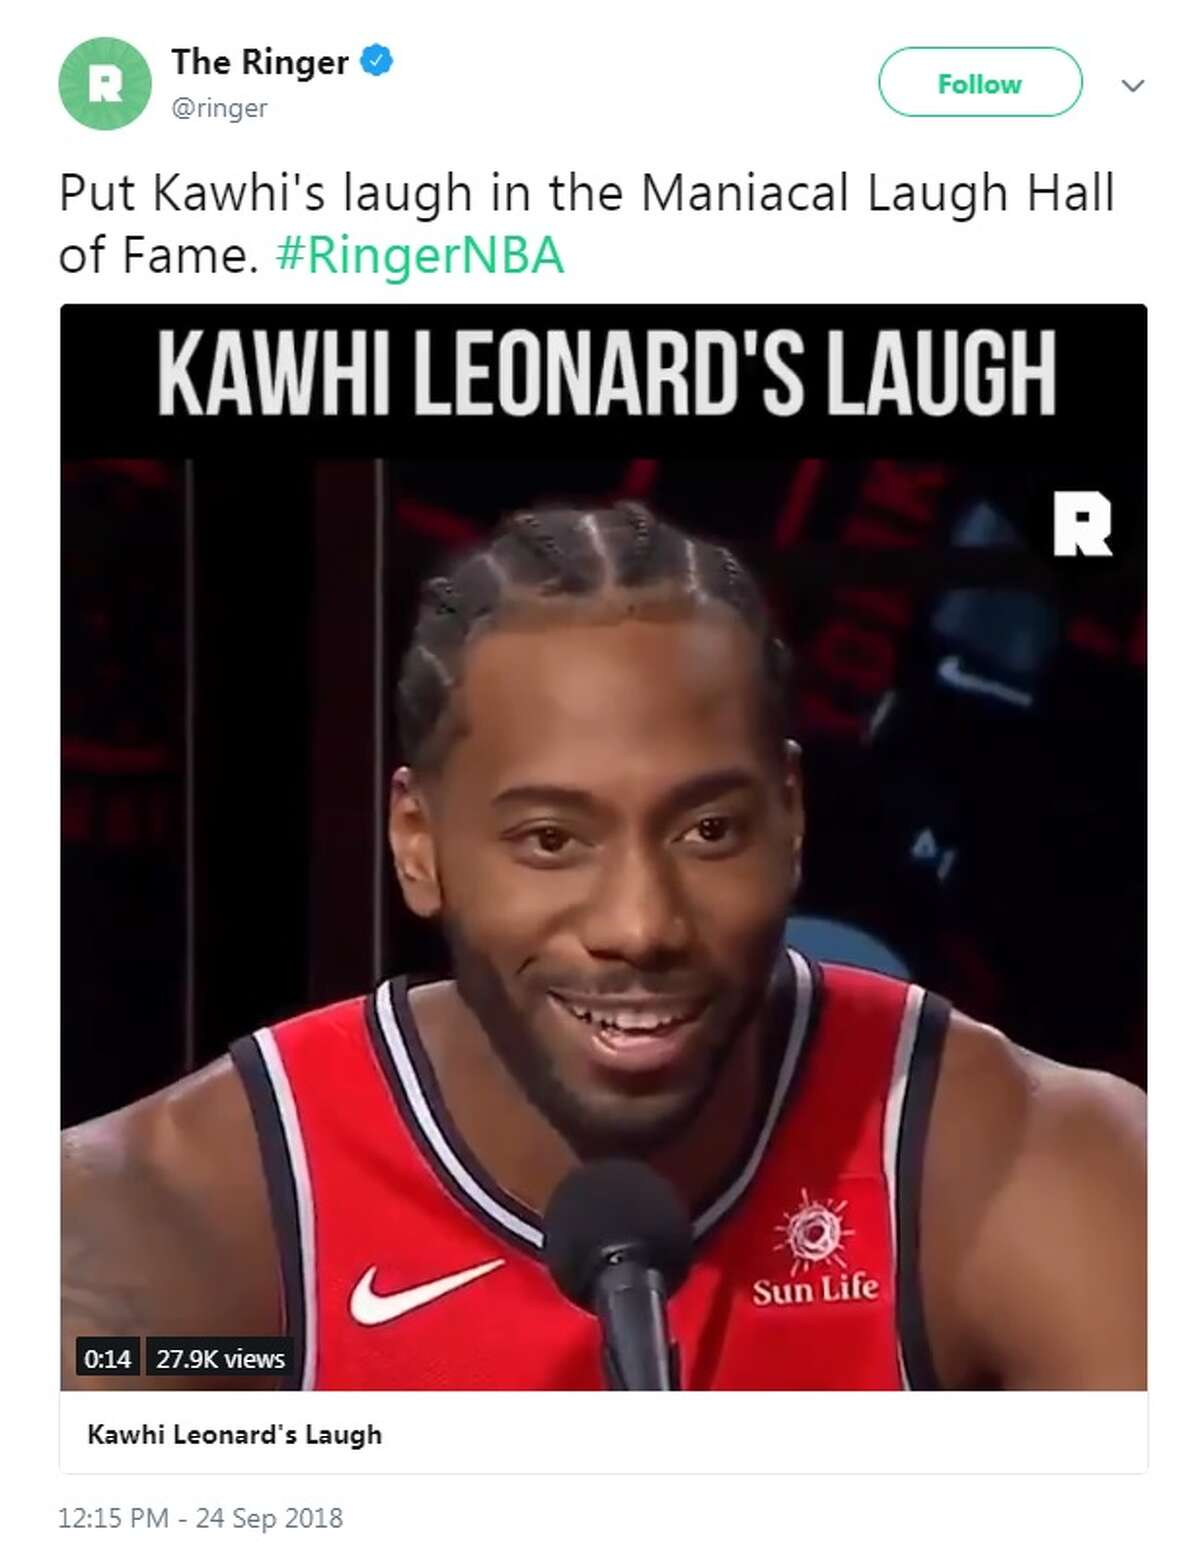 @ringer: Put Kawhi's laugh in the Maniacal Laugh Hall of Fame. #RingerNBA